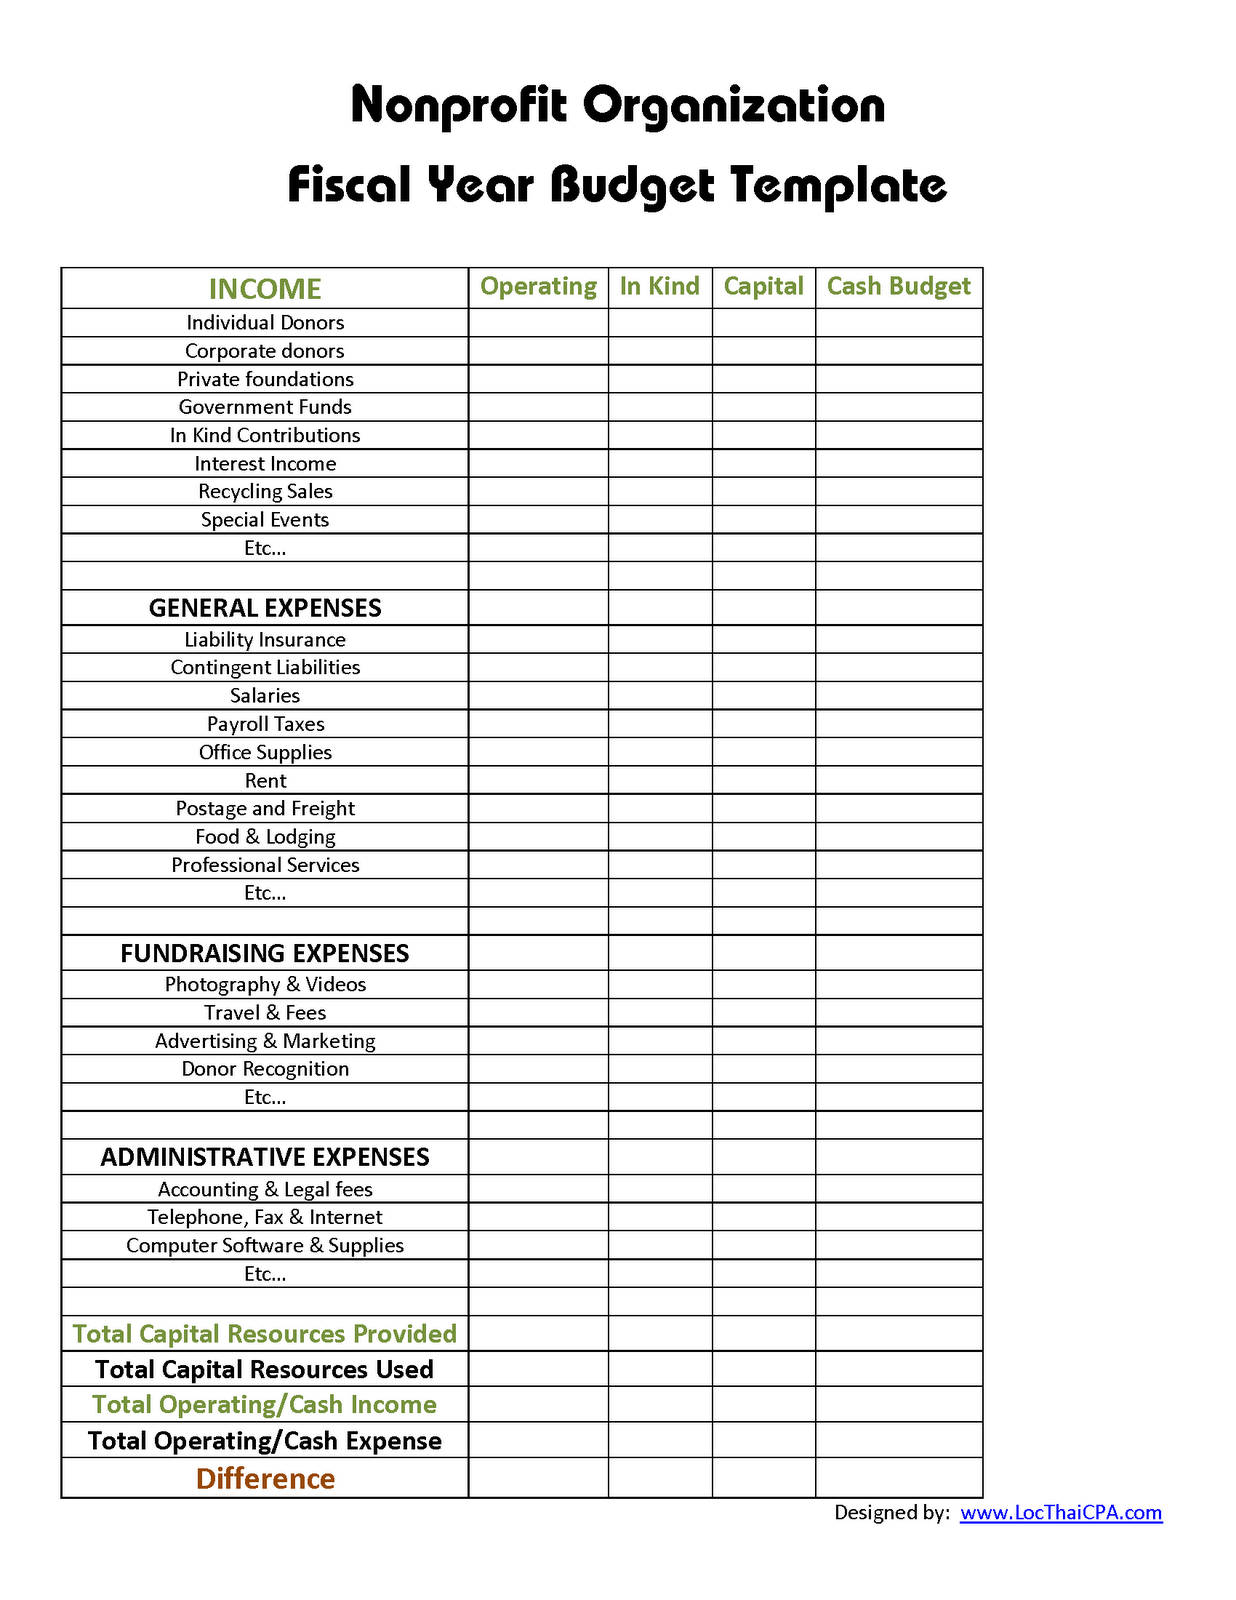 Free nonprofit business plan template top 10 business plan templates you can download free flashek Gallery